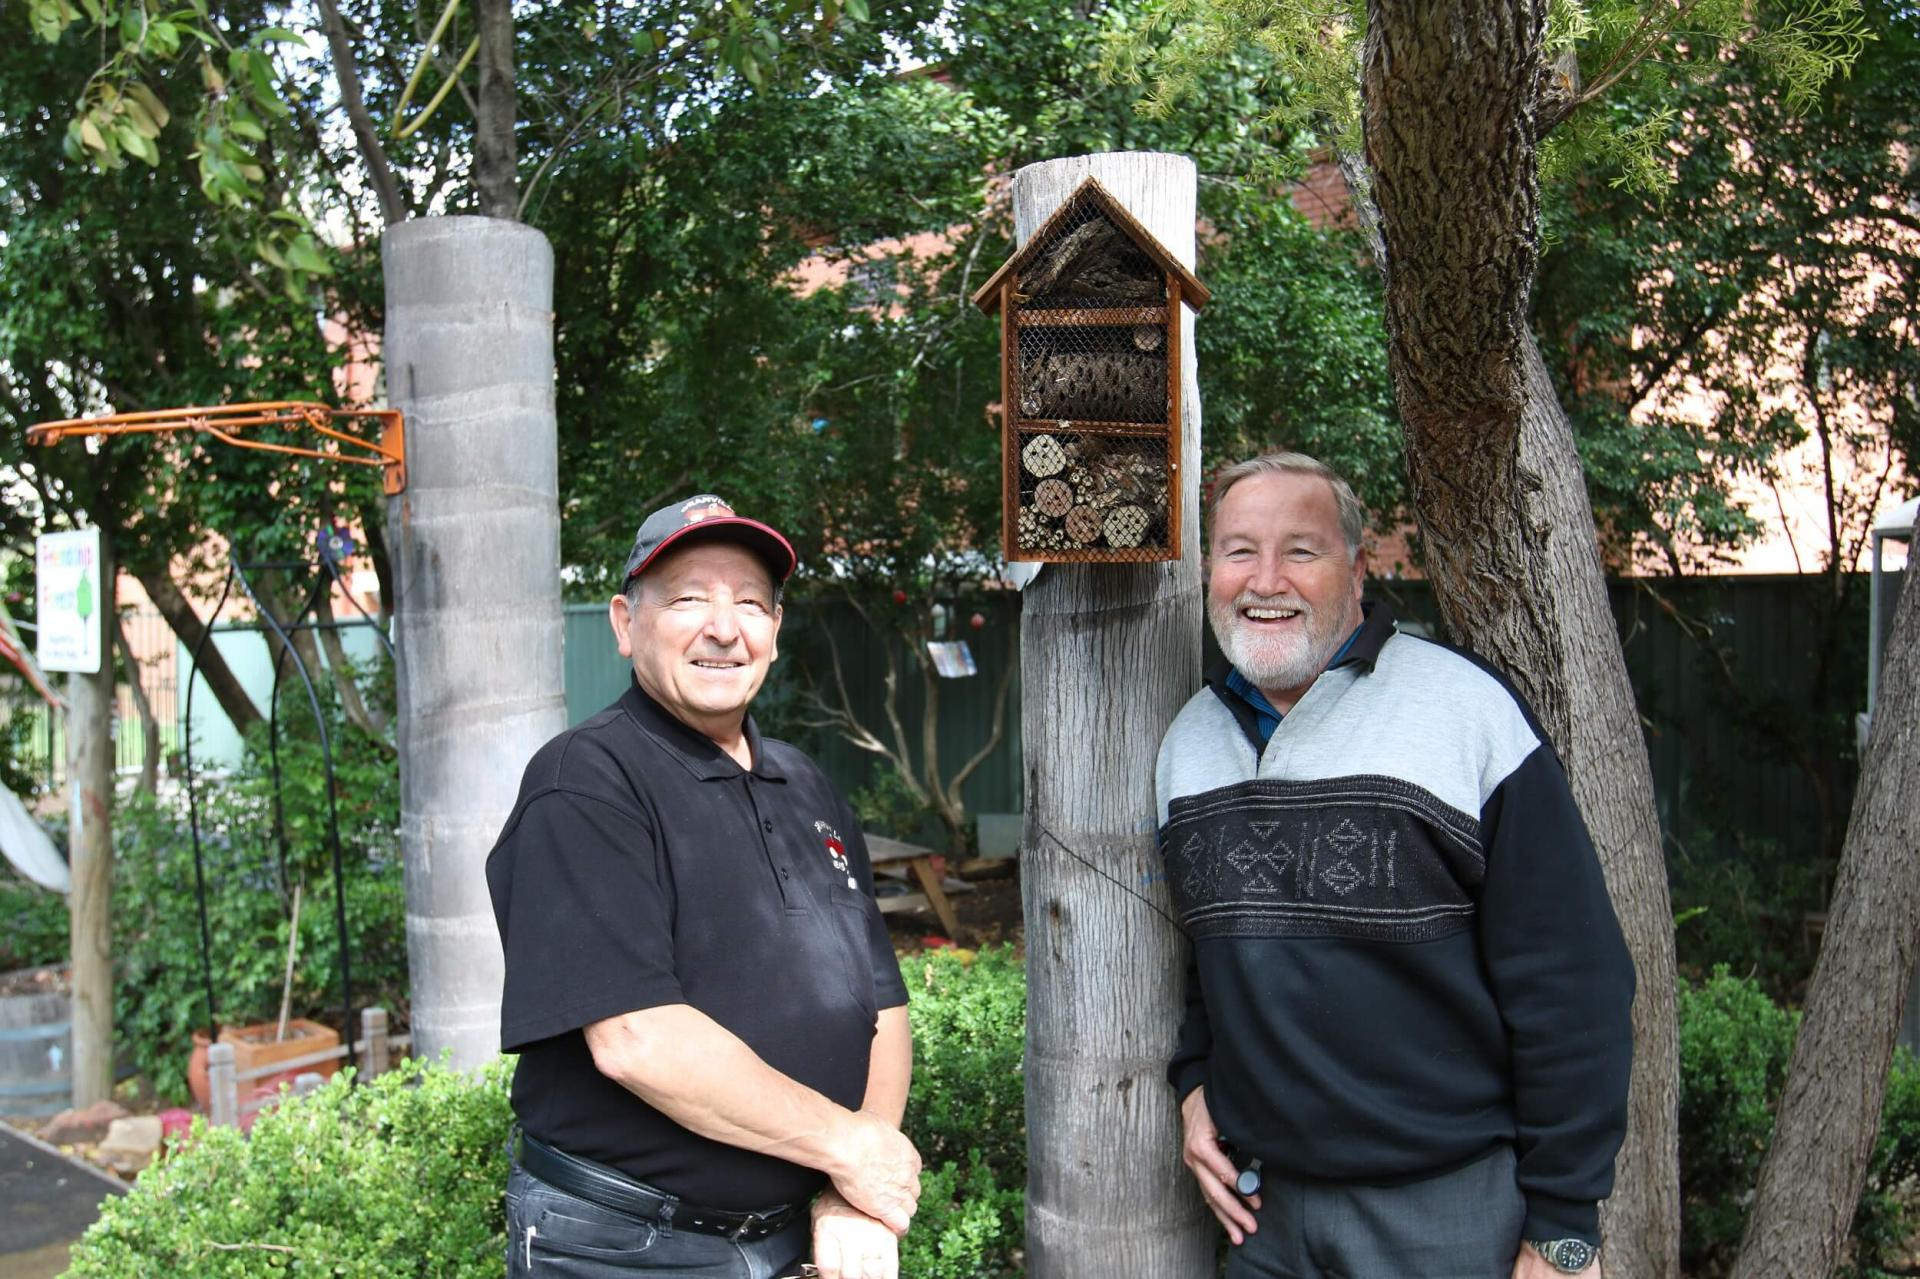 Sam Zammit, Granville Men's Shed Volunteer and bird house builder/ architect with Mayor Greg Cummings